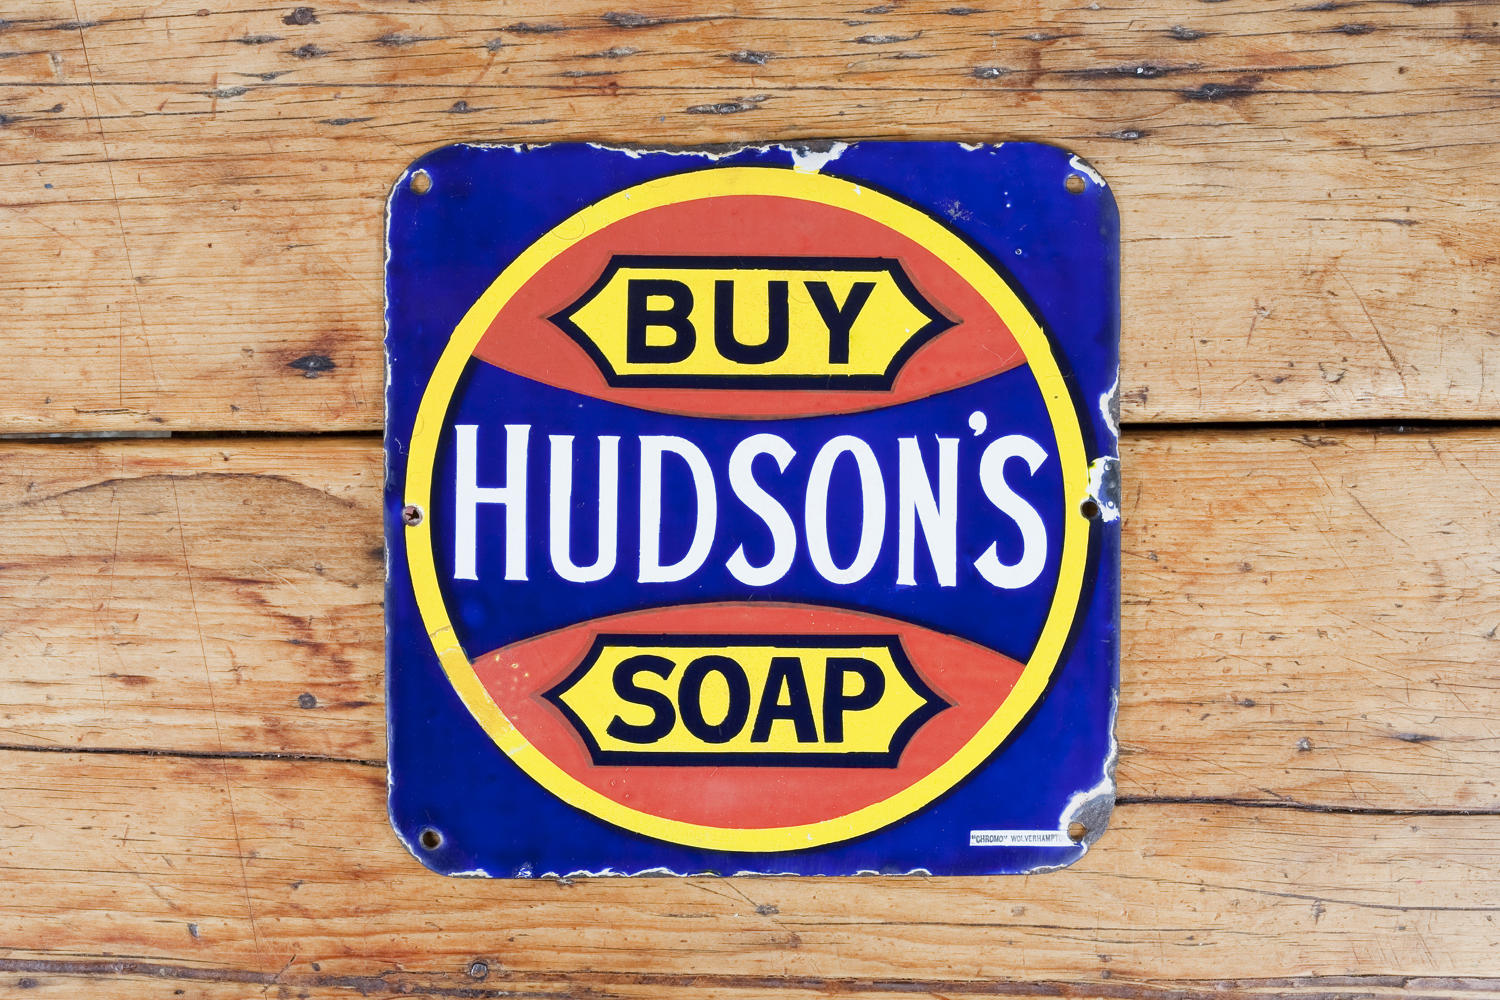 Hudson's Soap enamel sign